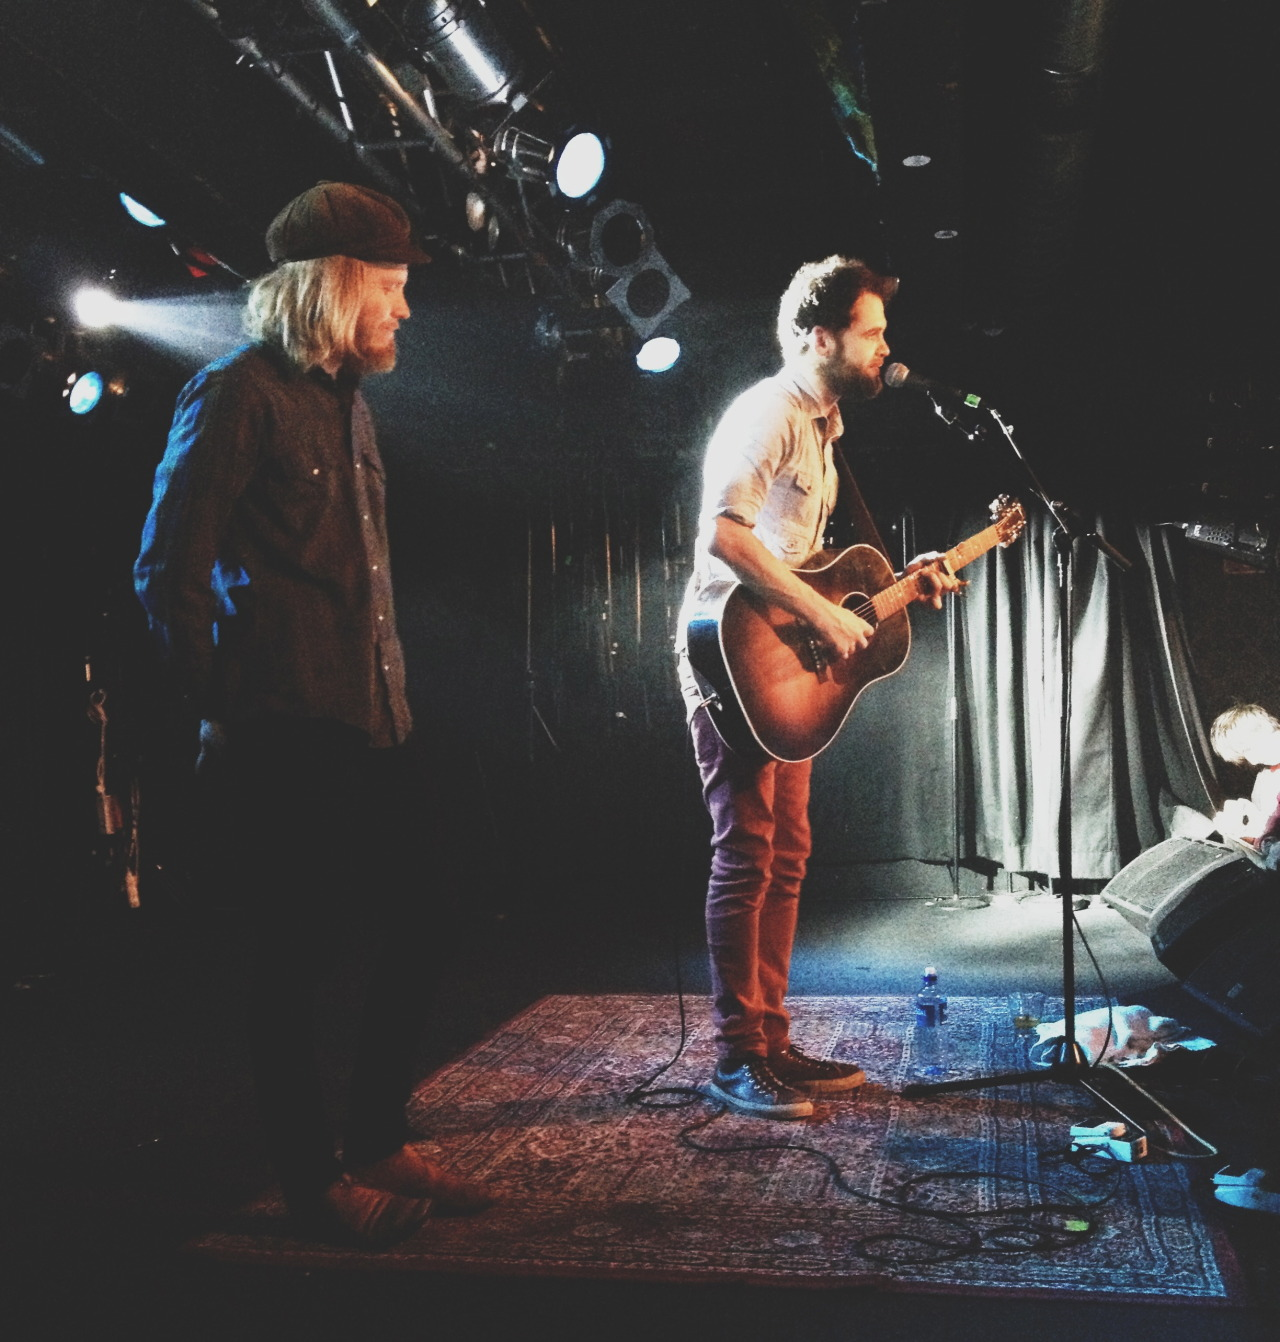 captureawildheart:  Monday. I went to Stockholm the see Passenger and Stu Larsen preform at Debaser Slussen. Incredible.